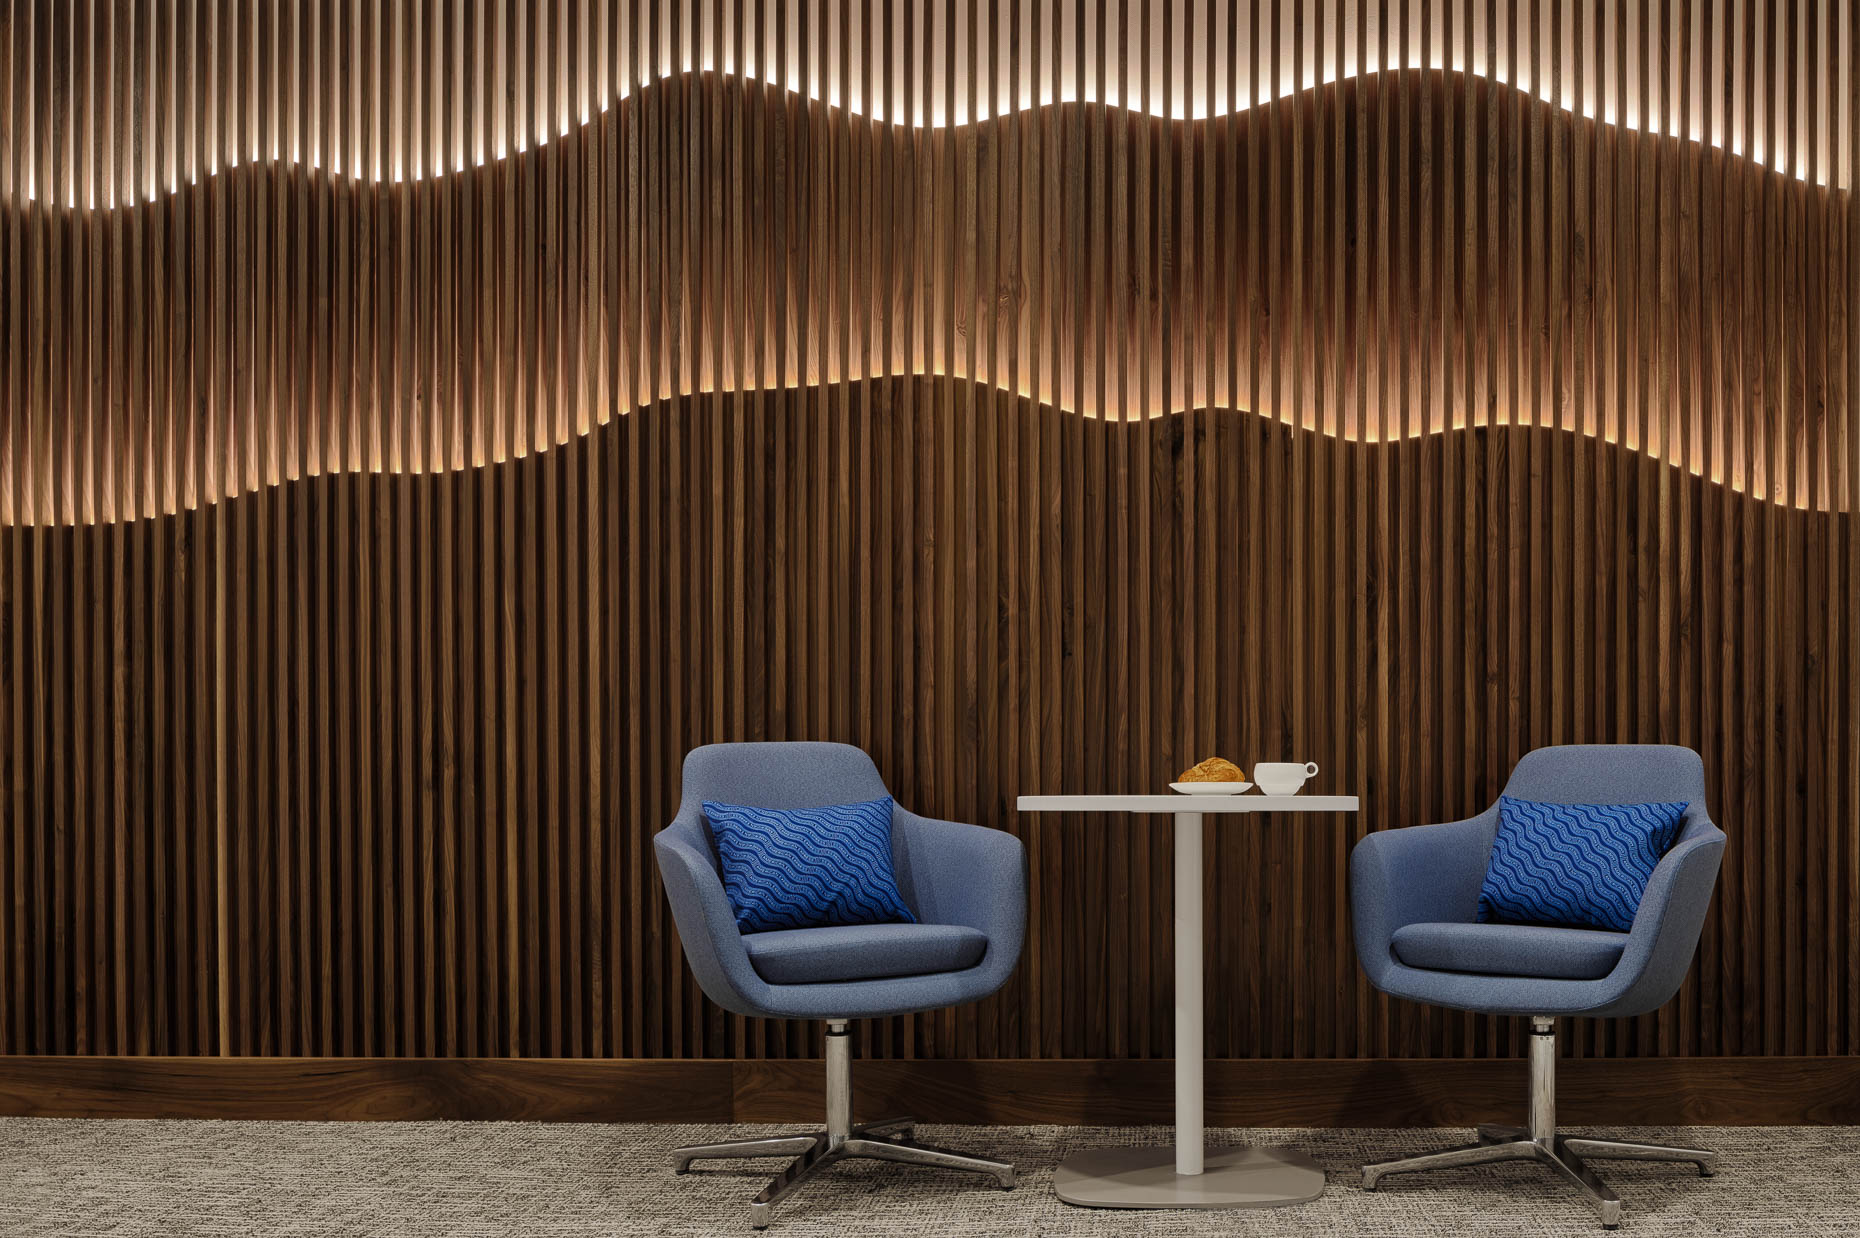 Los Angeles International Airport AMEX Centurion Lounge for American Express photographed by Brad Feinknopf based in Columbus, Ohio